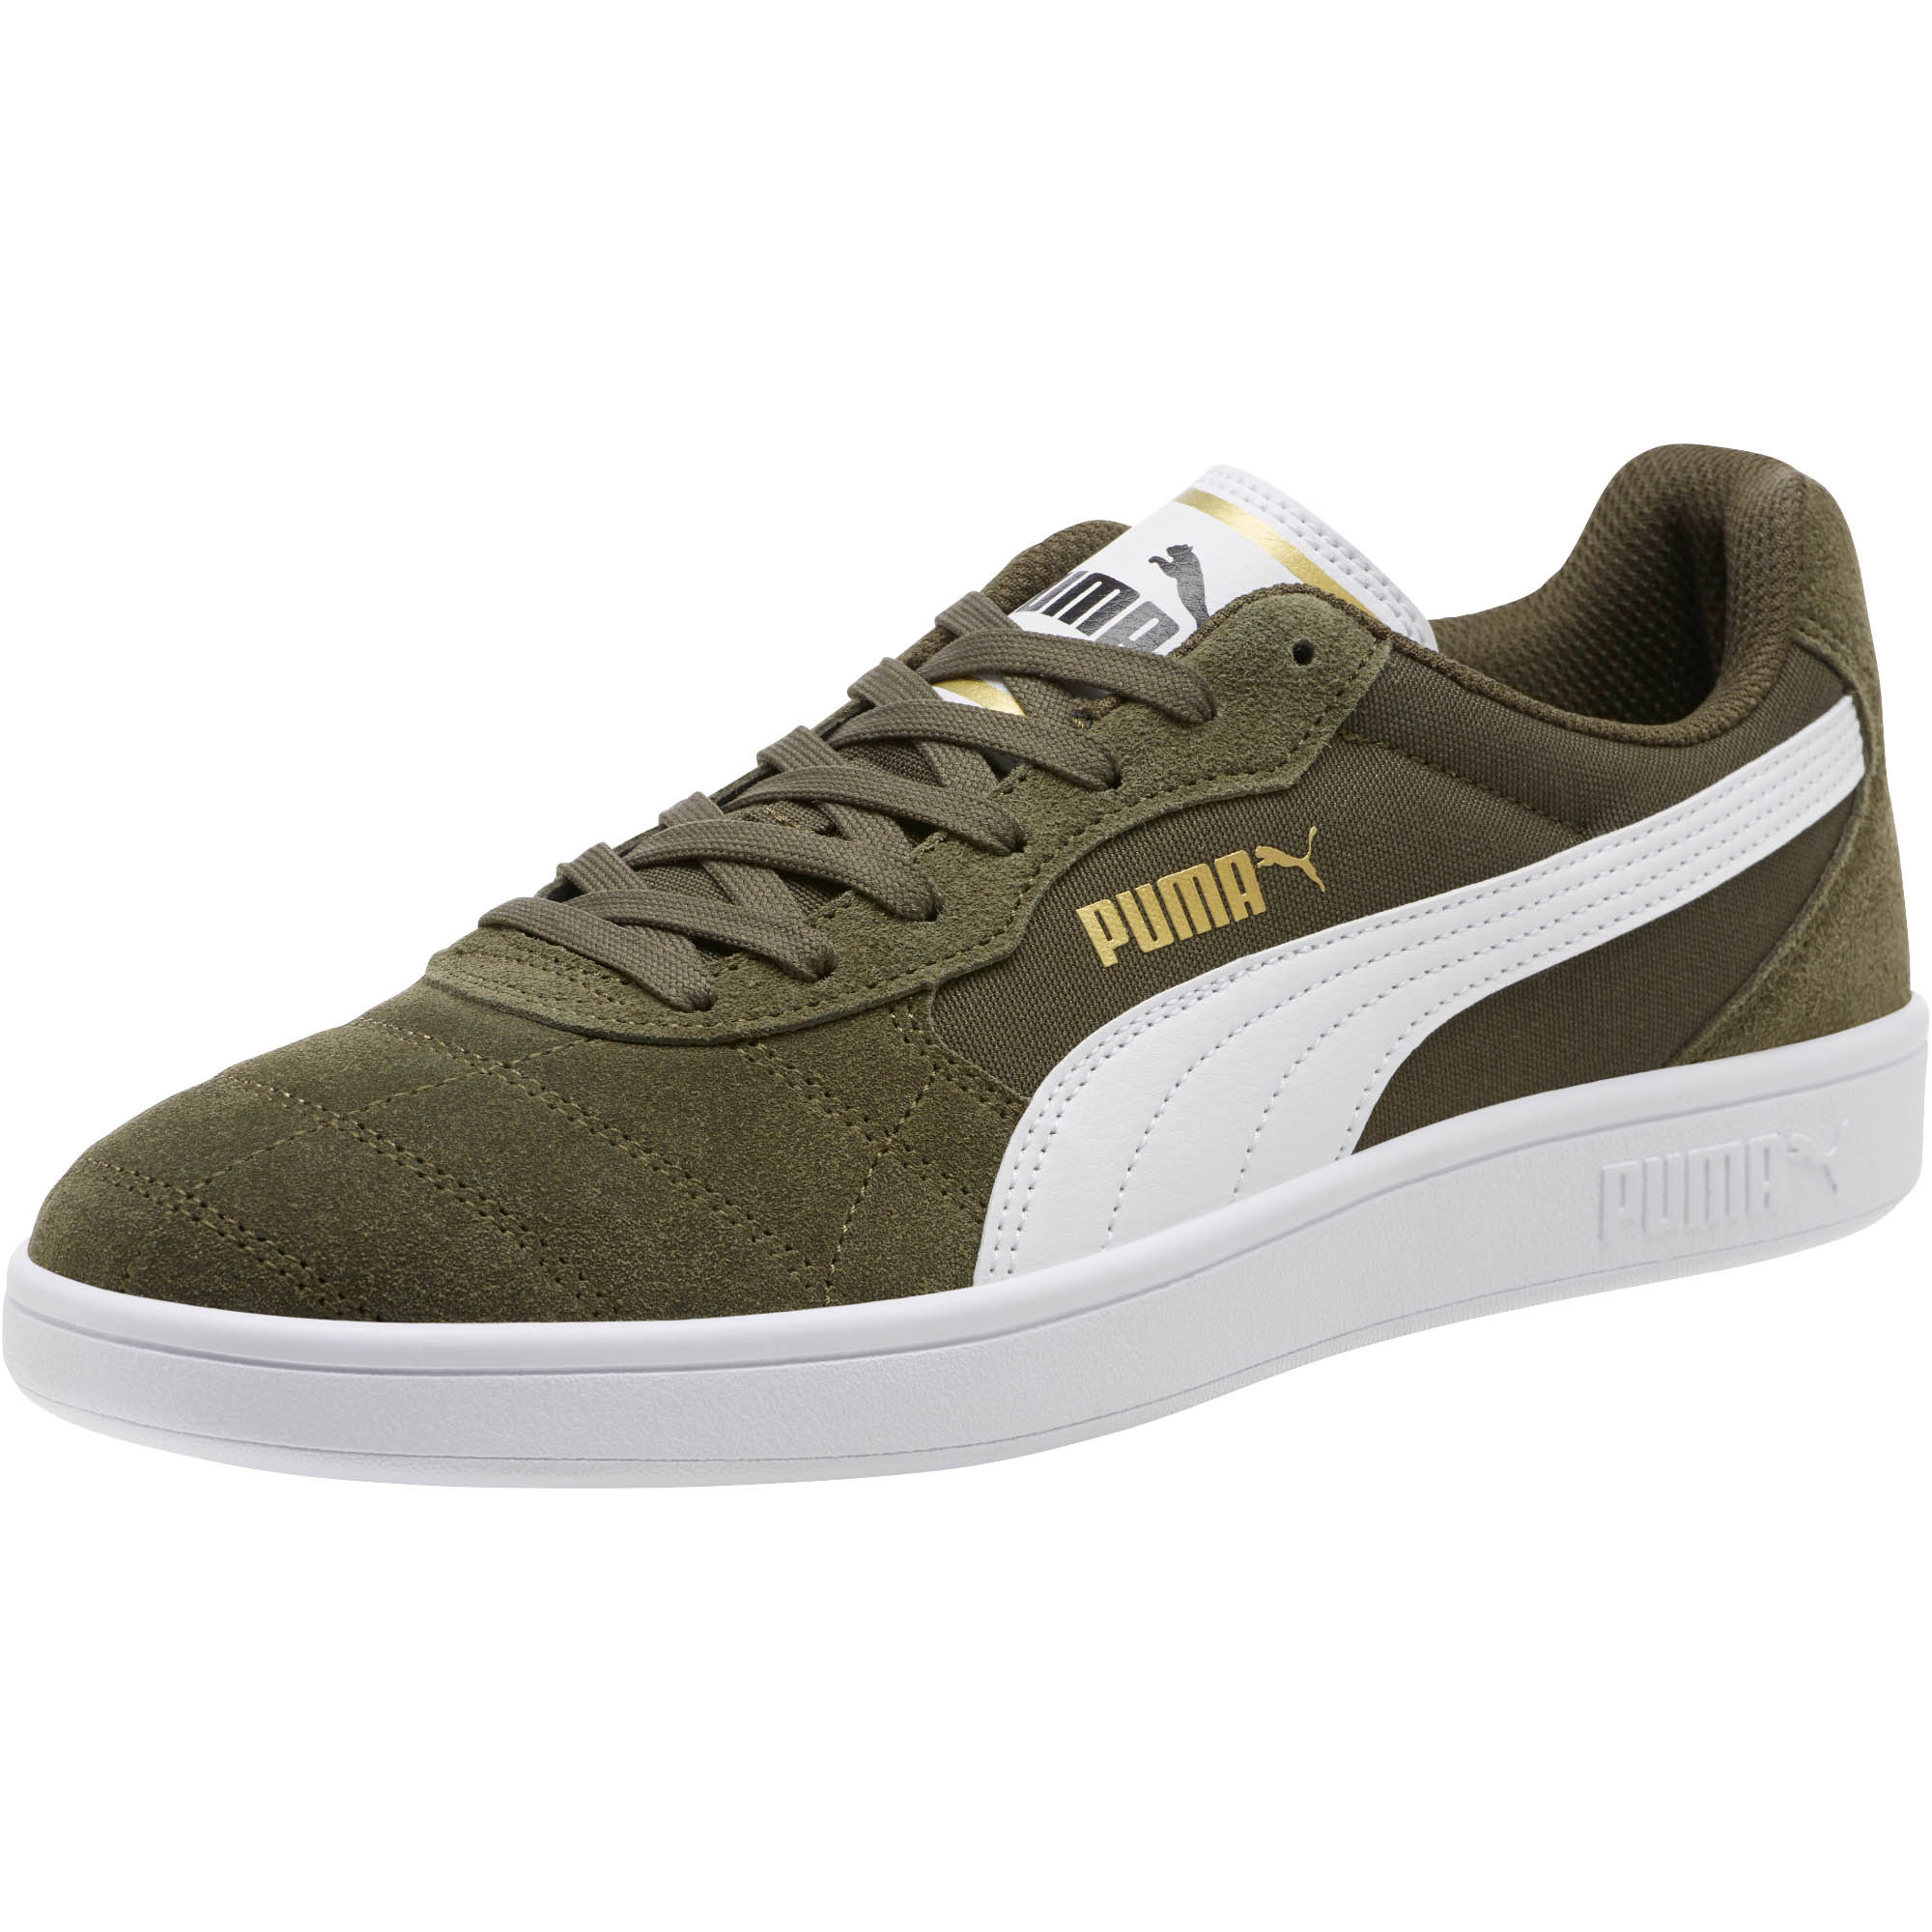 PUMA-Astro-Kick-Sneakers-Men-Shoe-Basics thumbnail 16